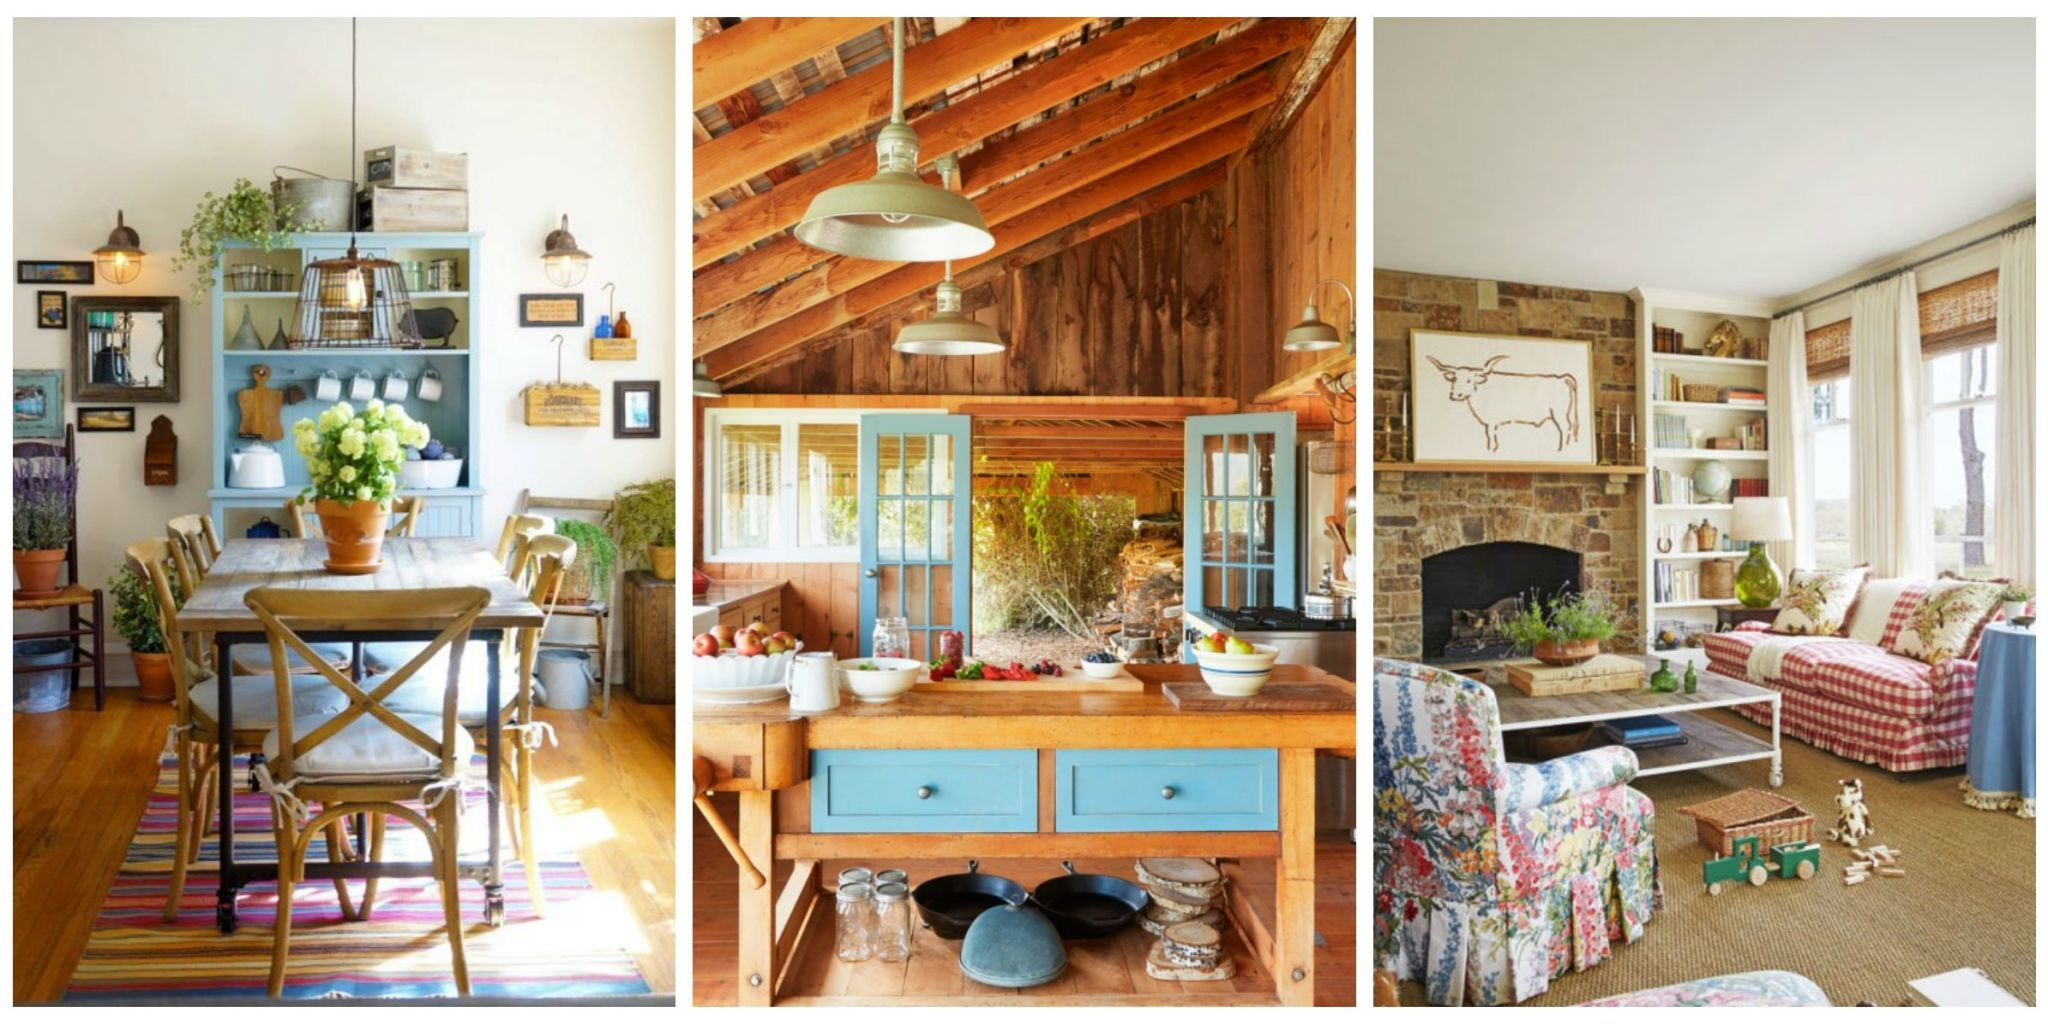 We Never Tire Of Beautiful Farmhouse Decoru2014from Bedrooms To Kitchens, Take  A Look At These Simple And Rustic Rooms. Want More?